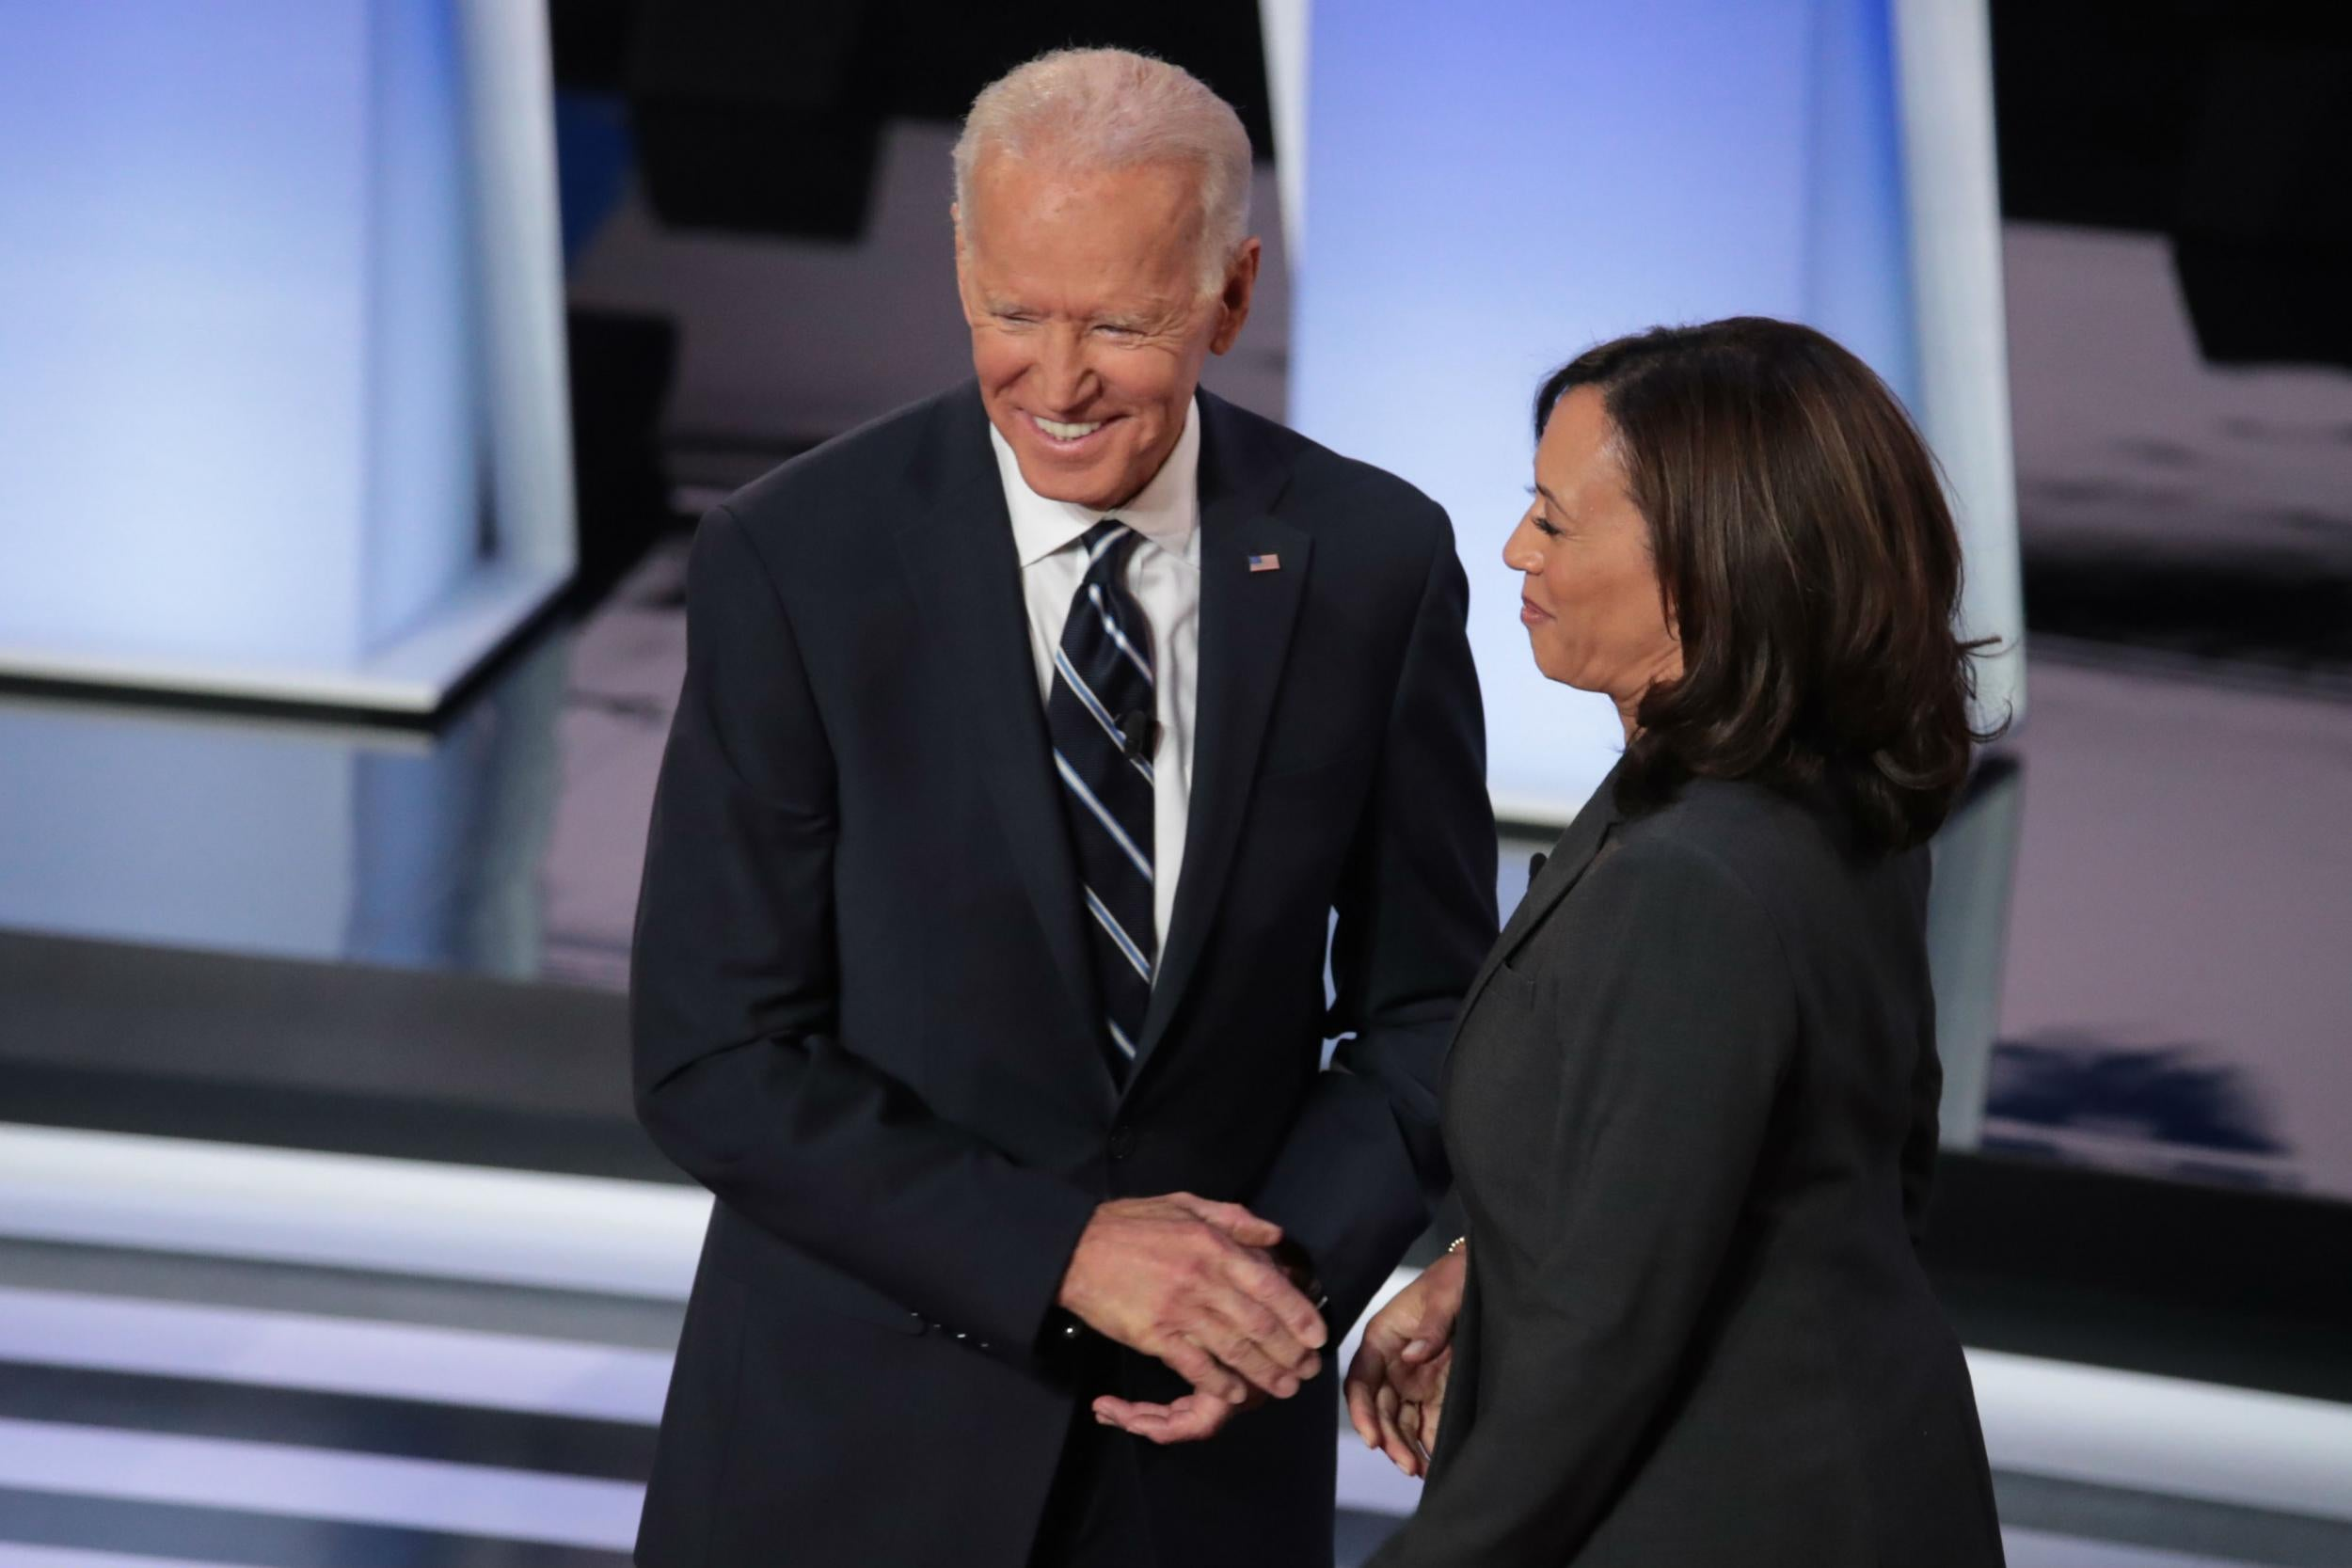 Democratic Debate Joe Biden Asks Kamala Harris To Go Easy On Me Kid On Hot Mic The Independent The Independent